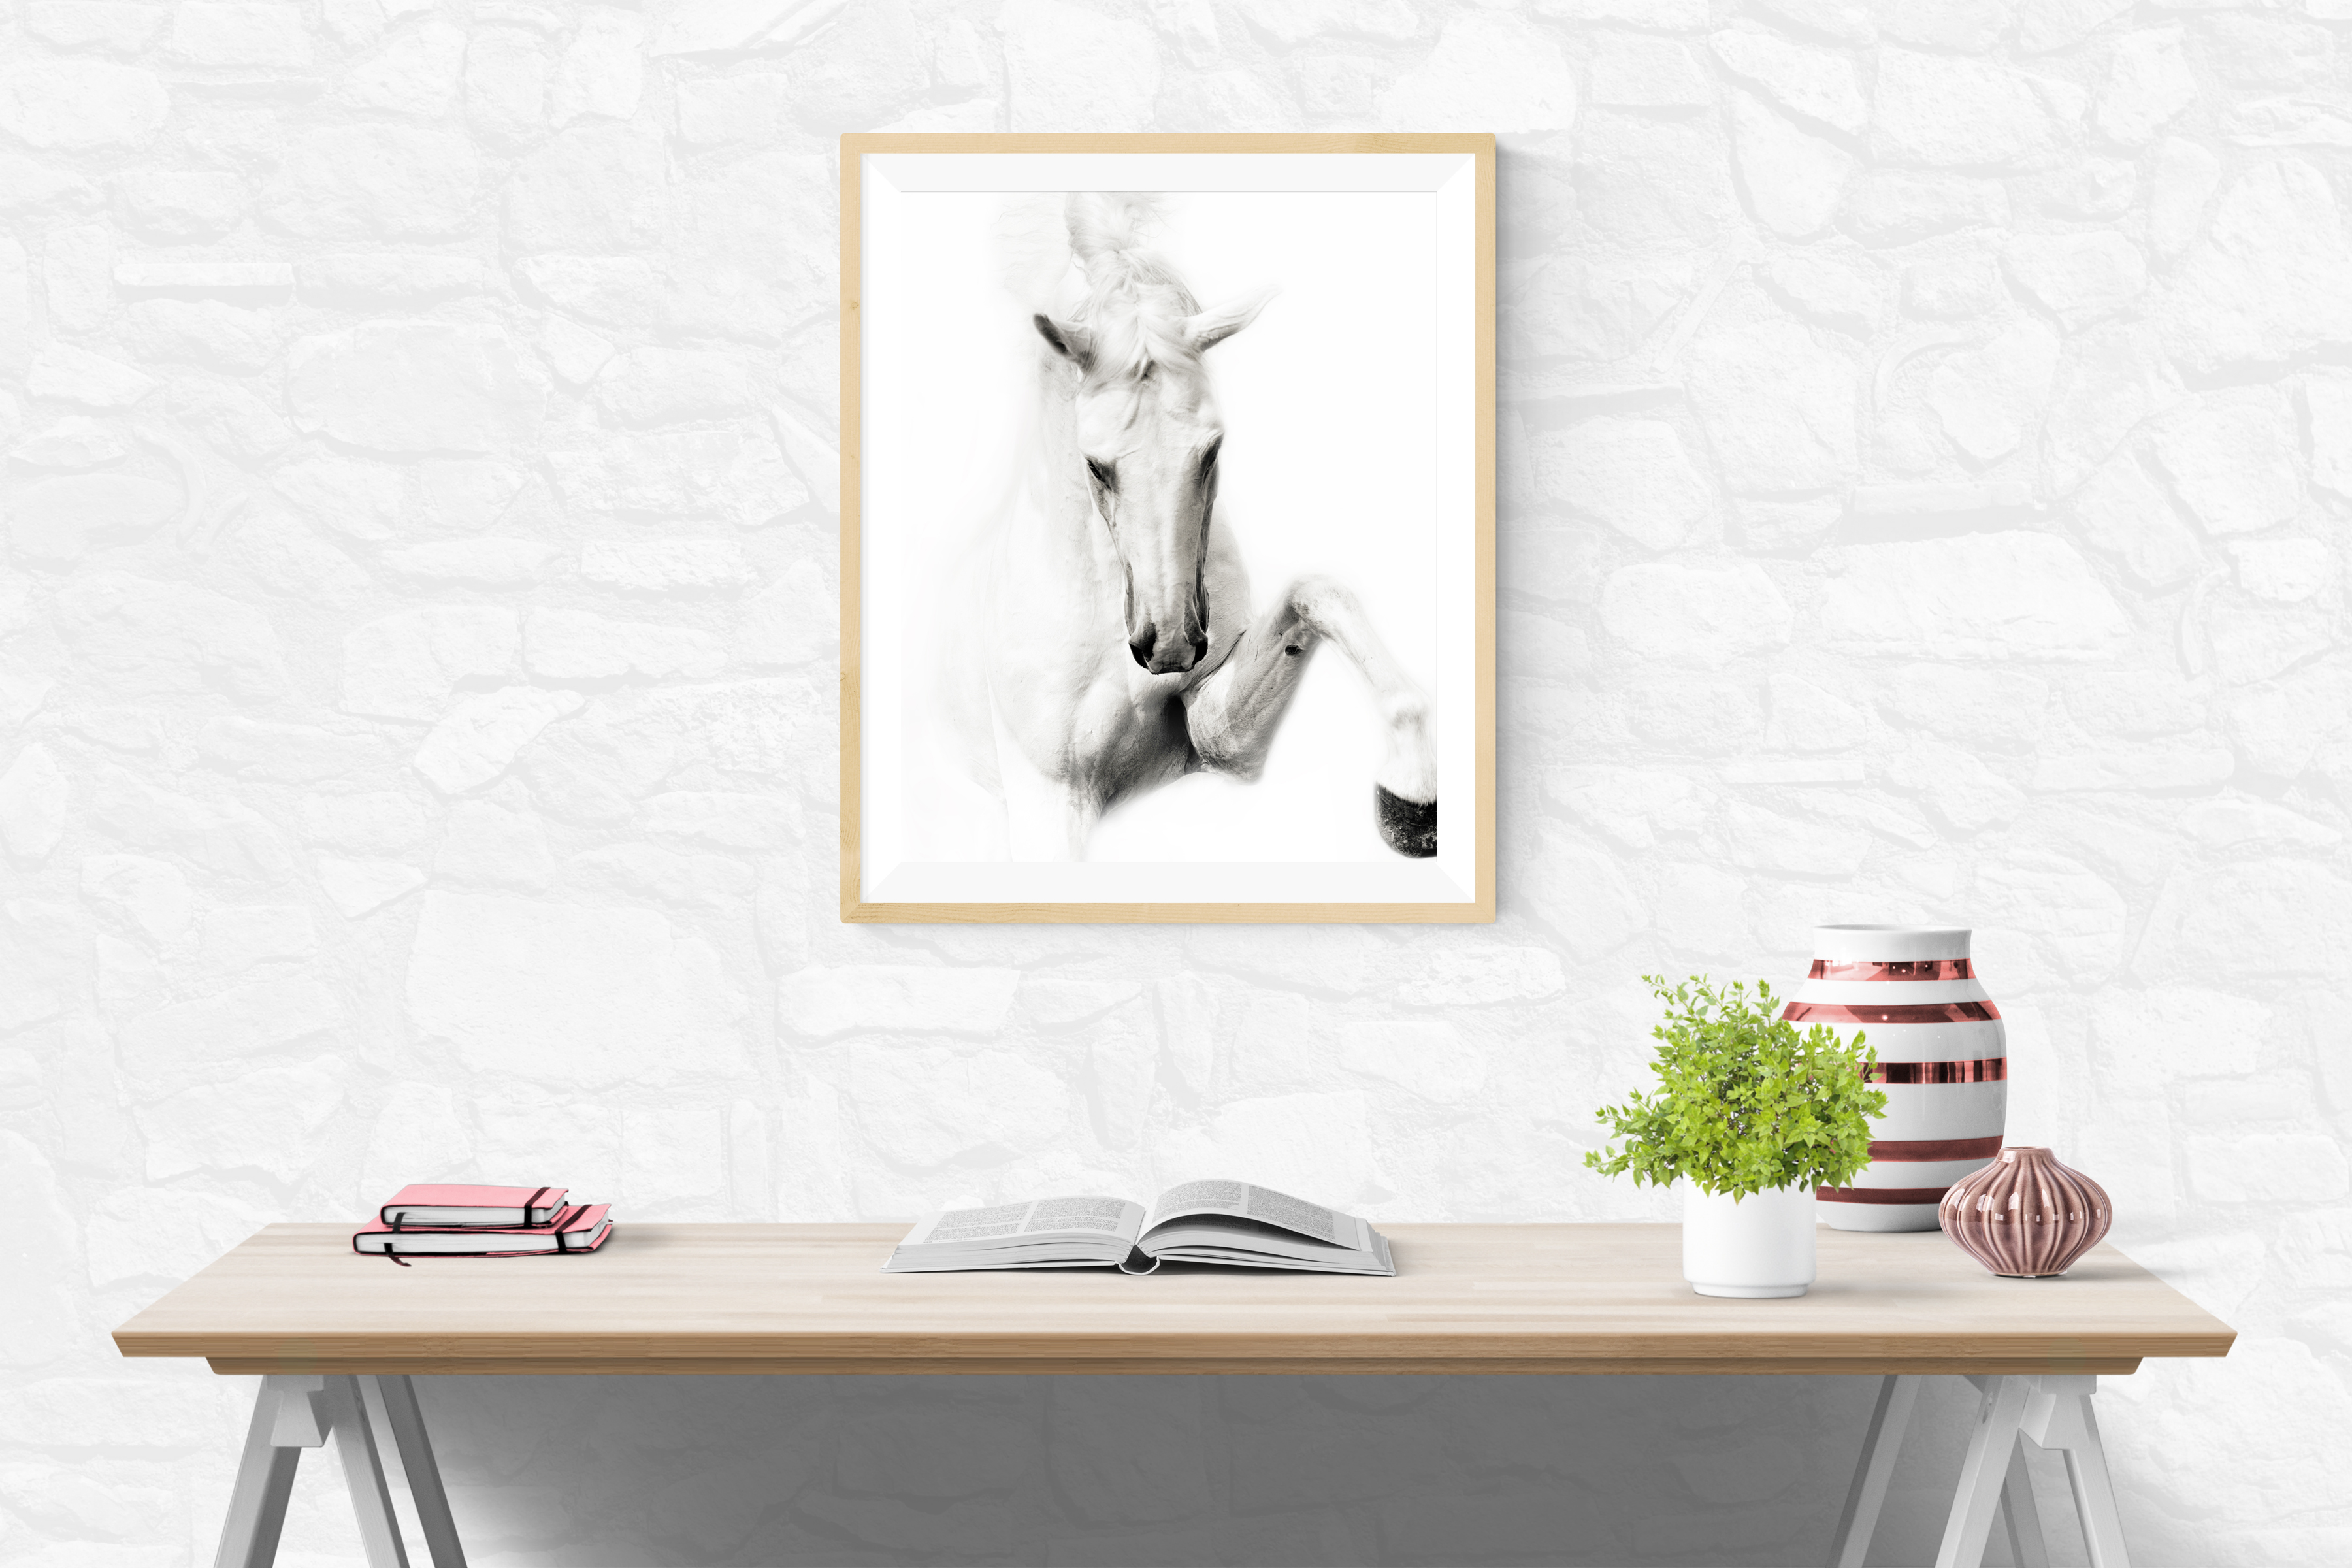 Striking White Stallion in Office Setting